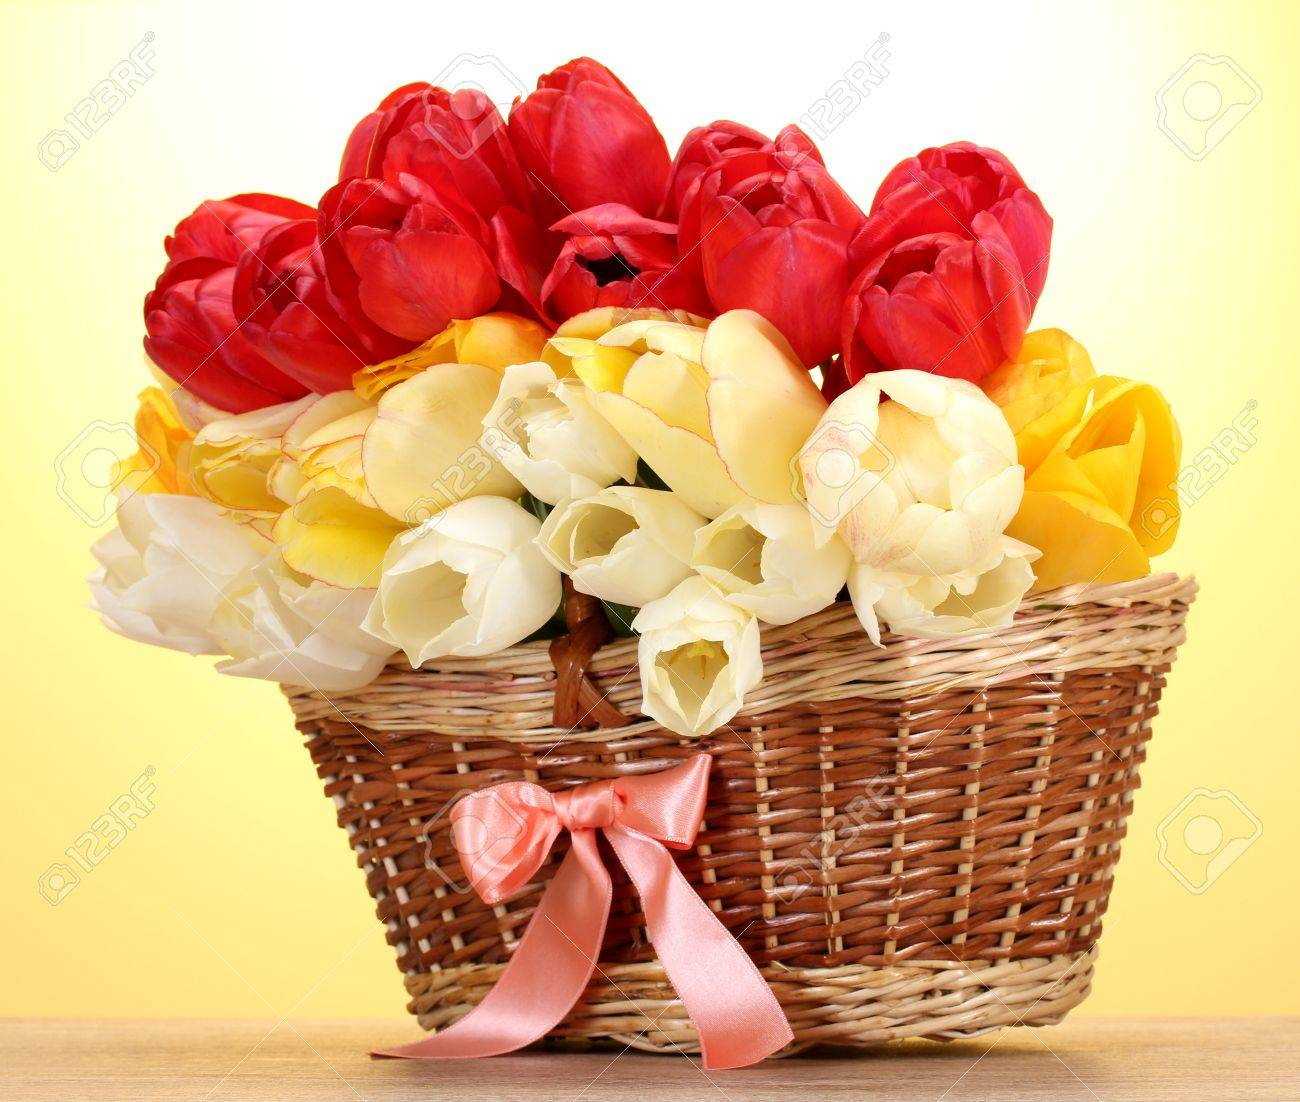 Bunch of flowers stock photos royalty free bunch of flowers images beautiful tulips in basket on wooden table on yellow background izmirmasajfo Image collections